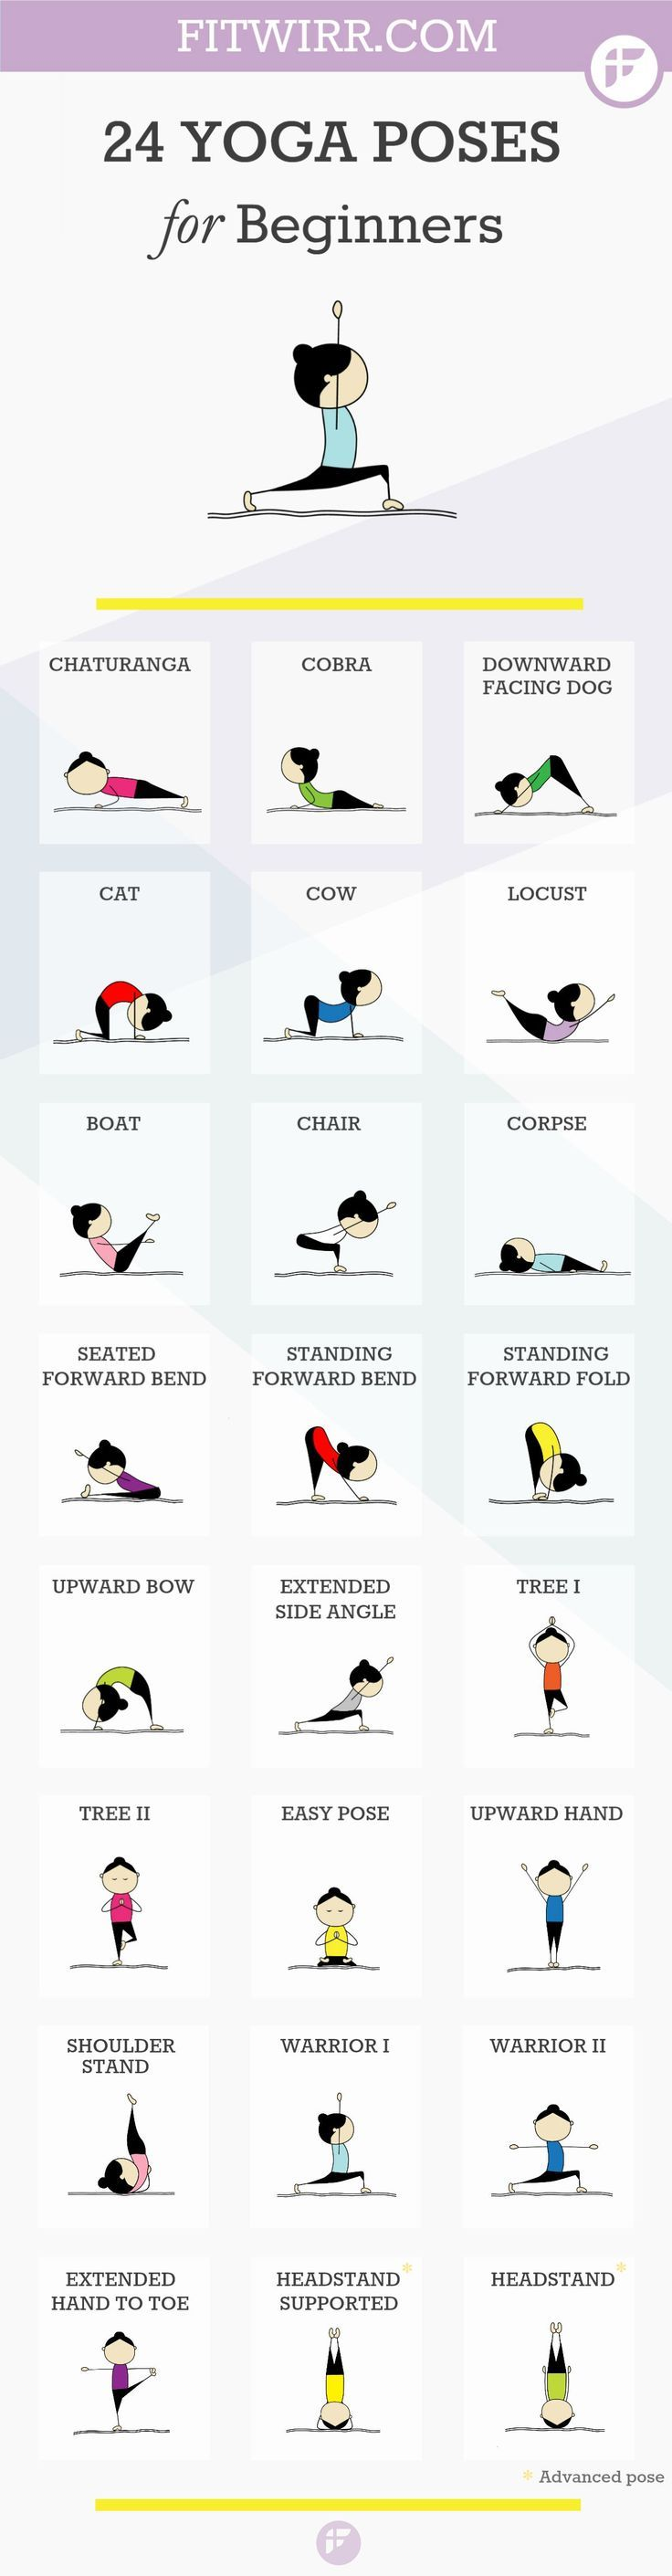 24 Yoga poses for beginners.  #yoga #meditation #health